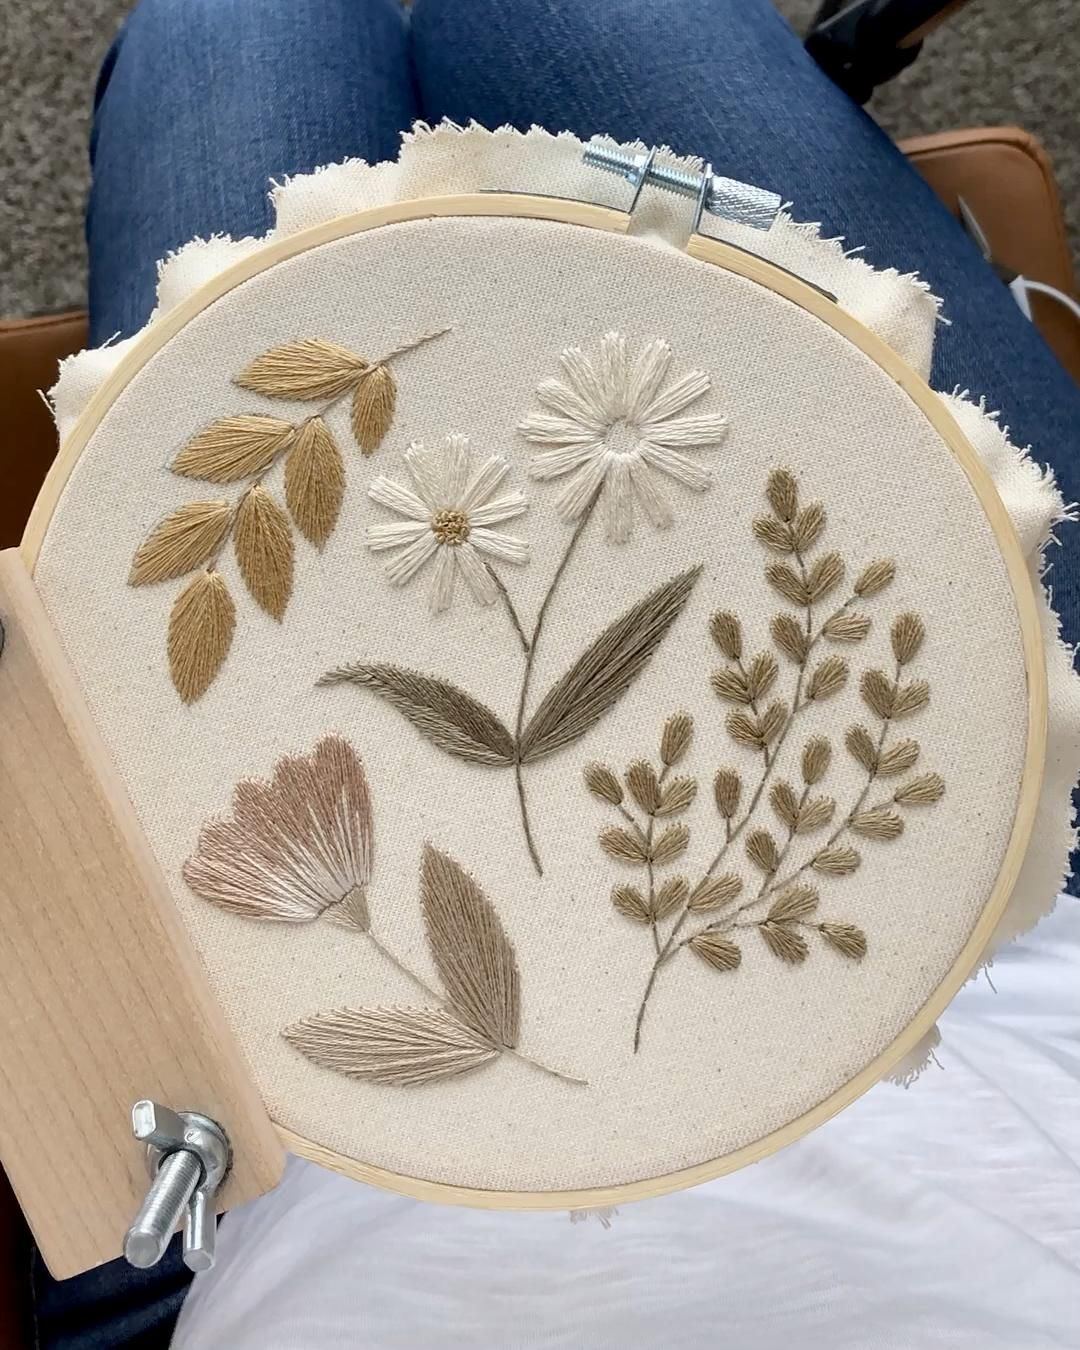 Botanical embroidery hoops